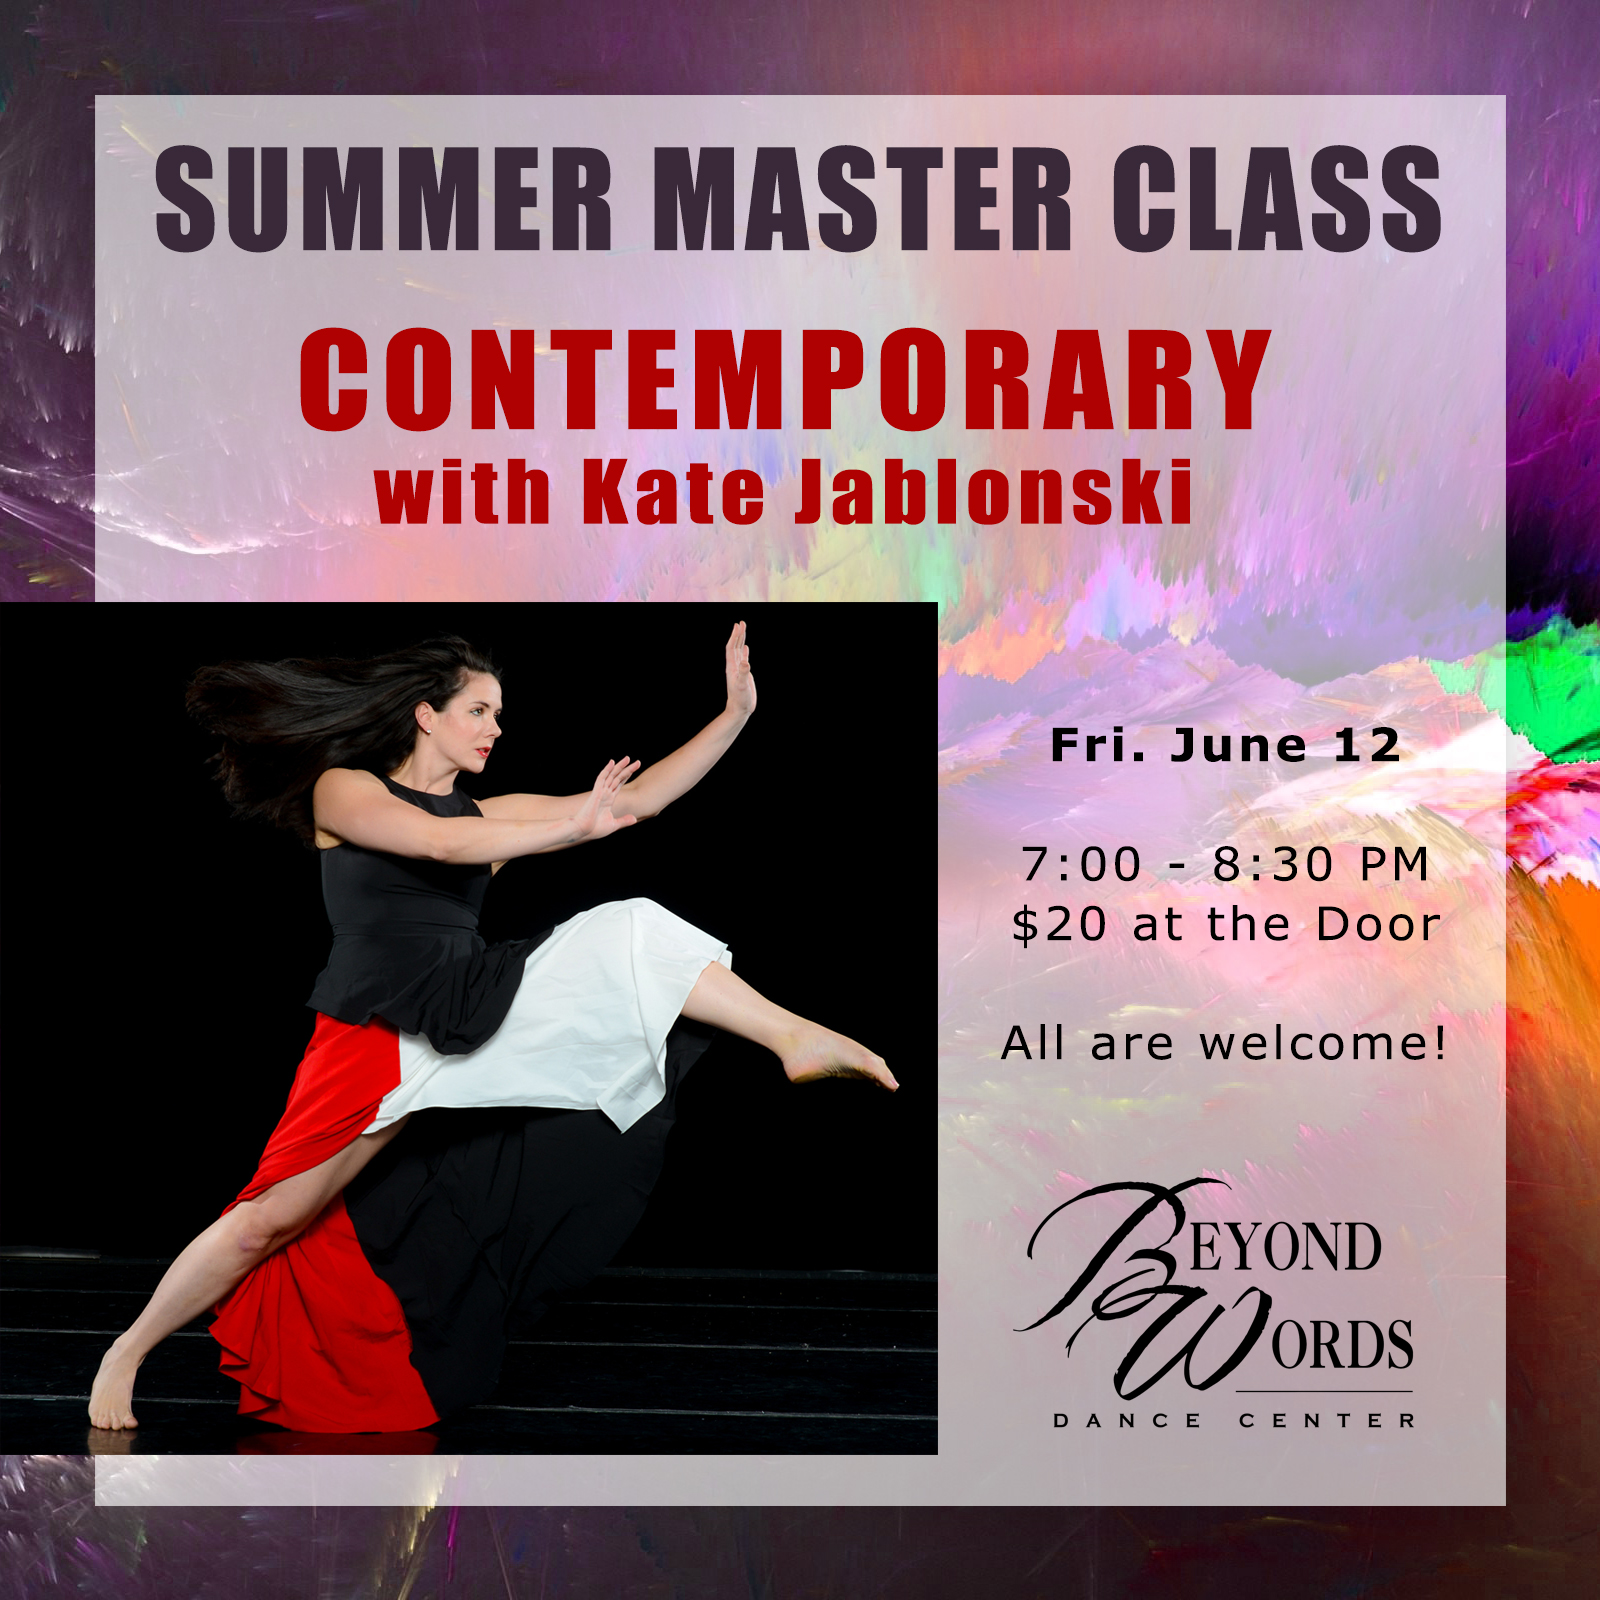 Summer Master Class - Contemporary